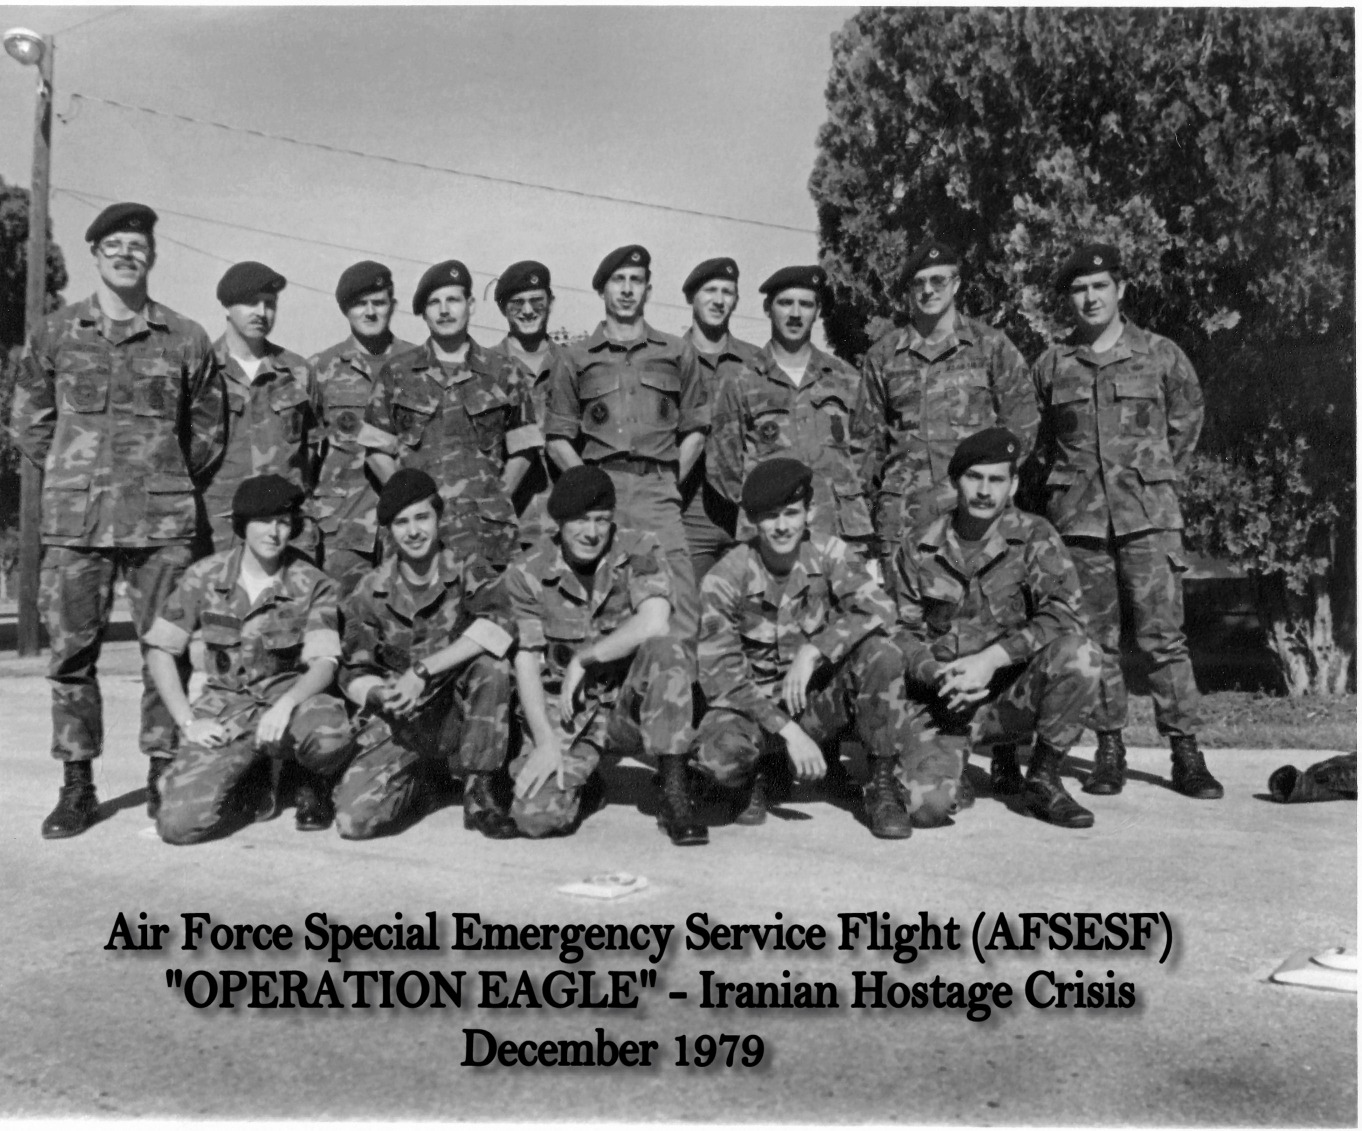 Historical AFSESF (Air Force Special Emergency Service Flight) Photo